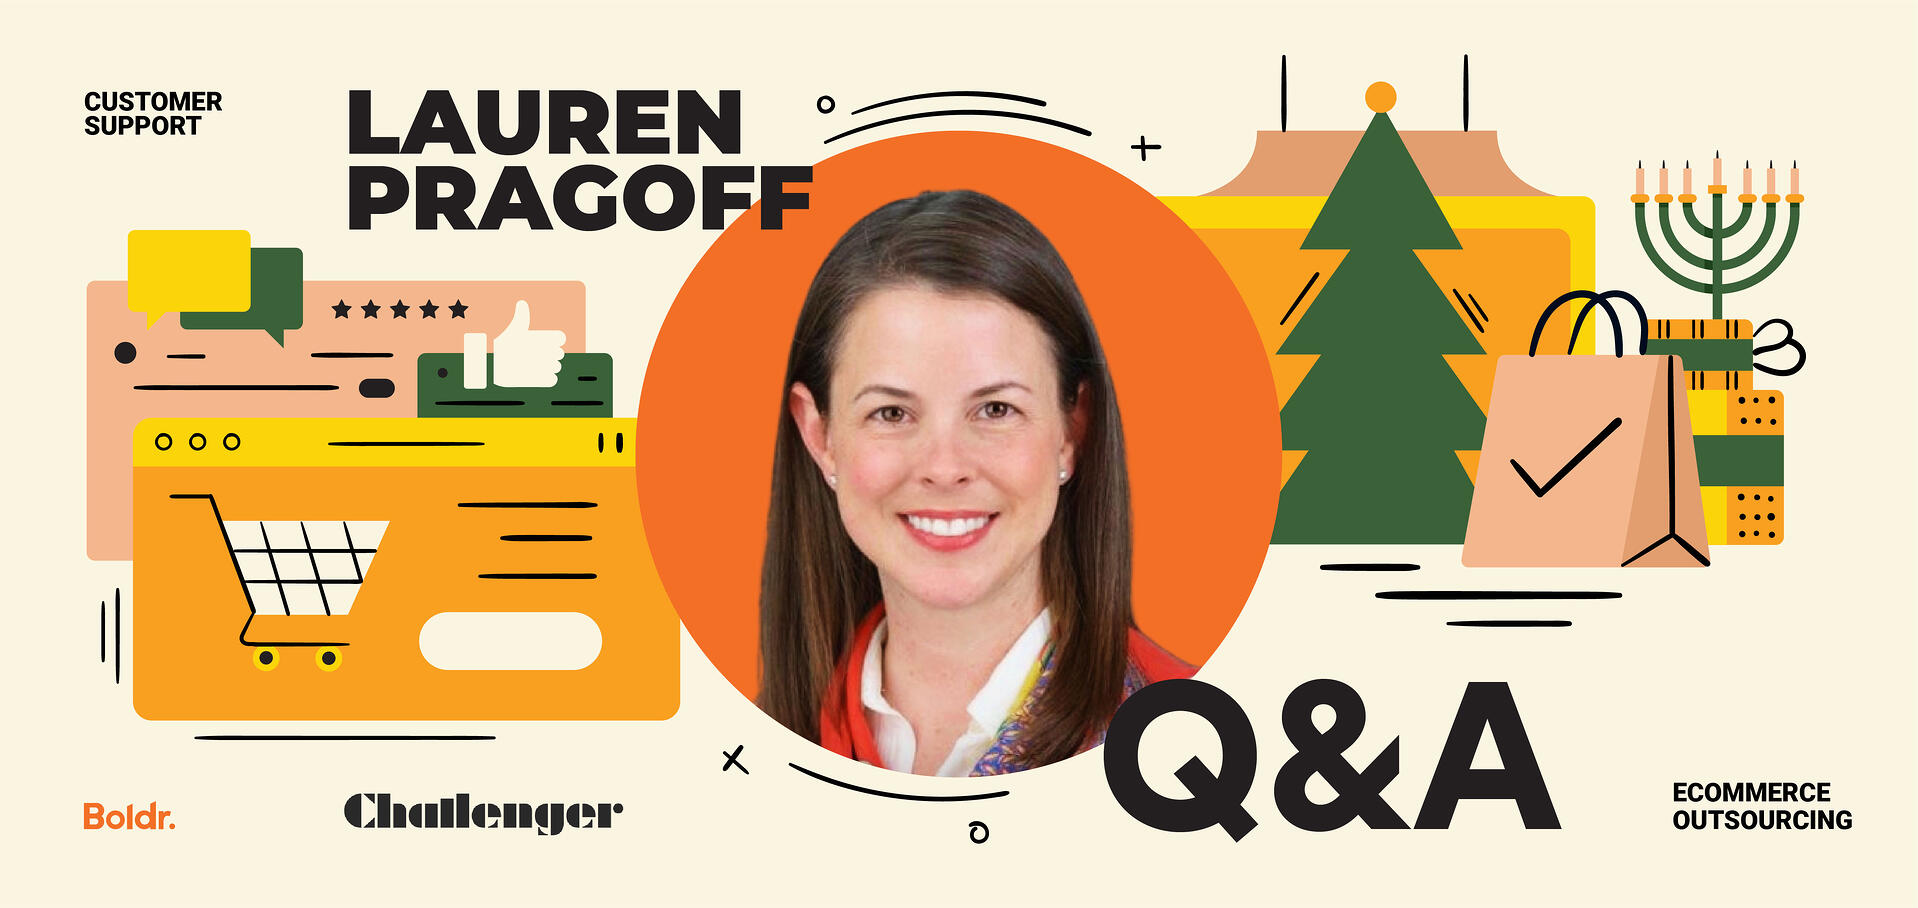 Q&A with Lauren Pragoff: eCommerce Customer Support Strategies for the Holidays